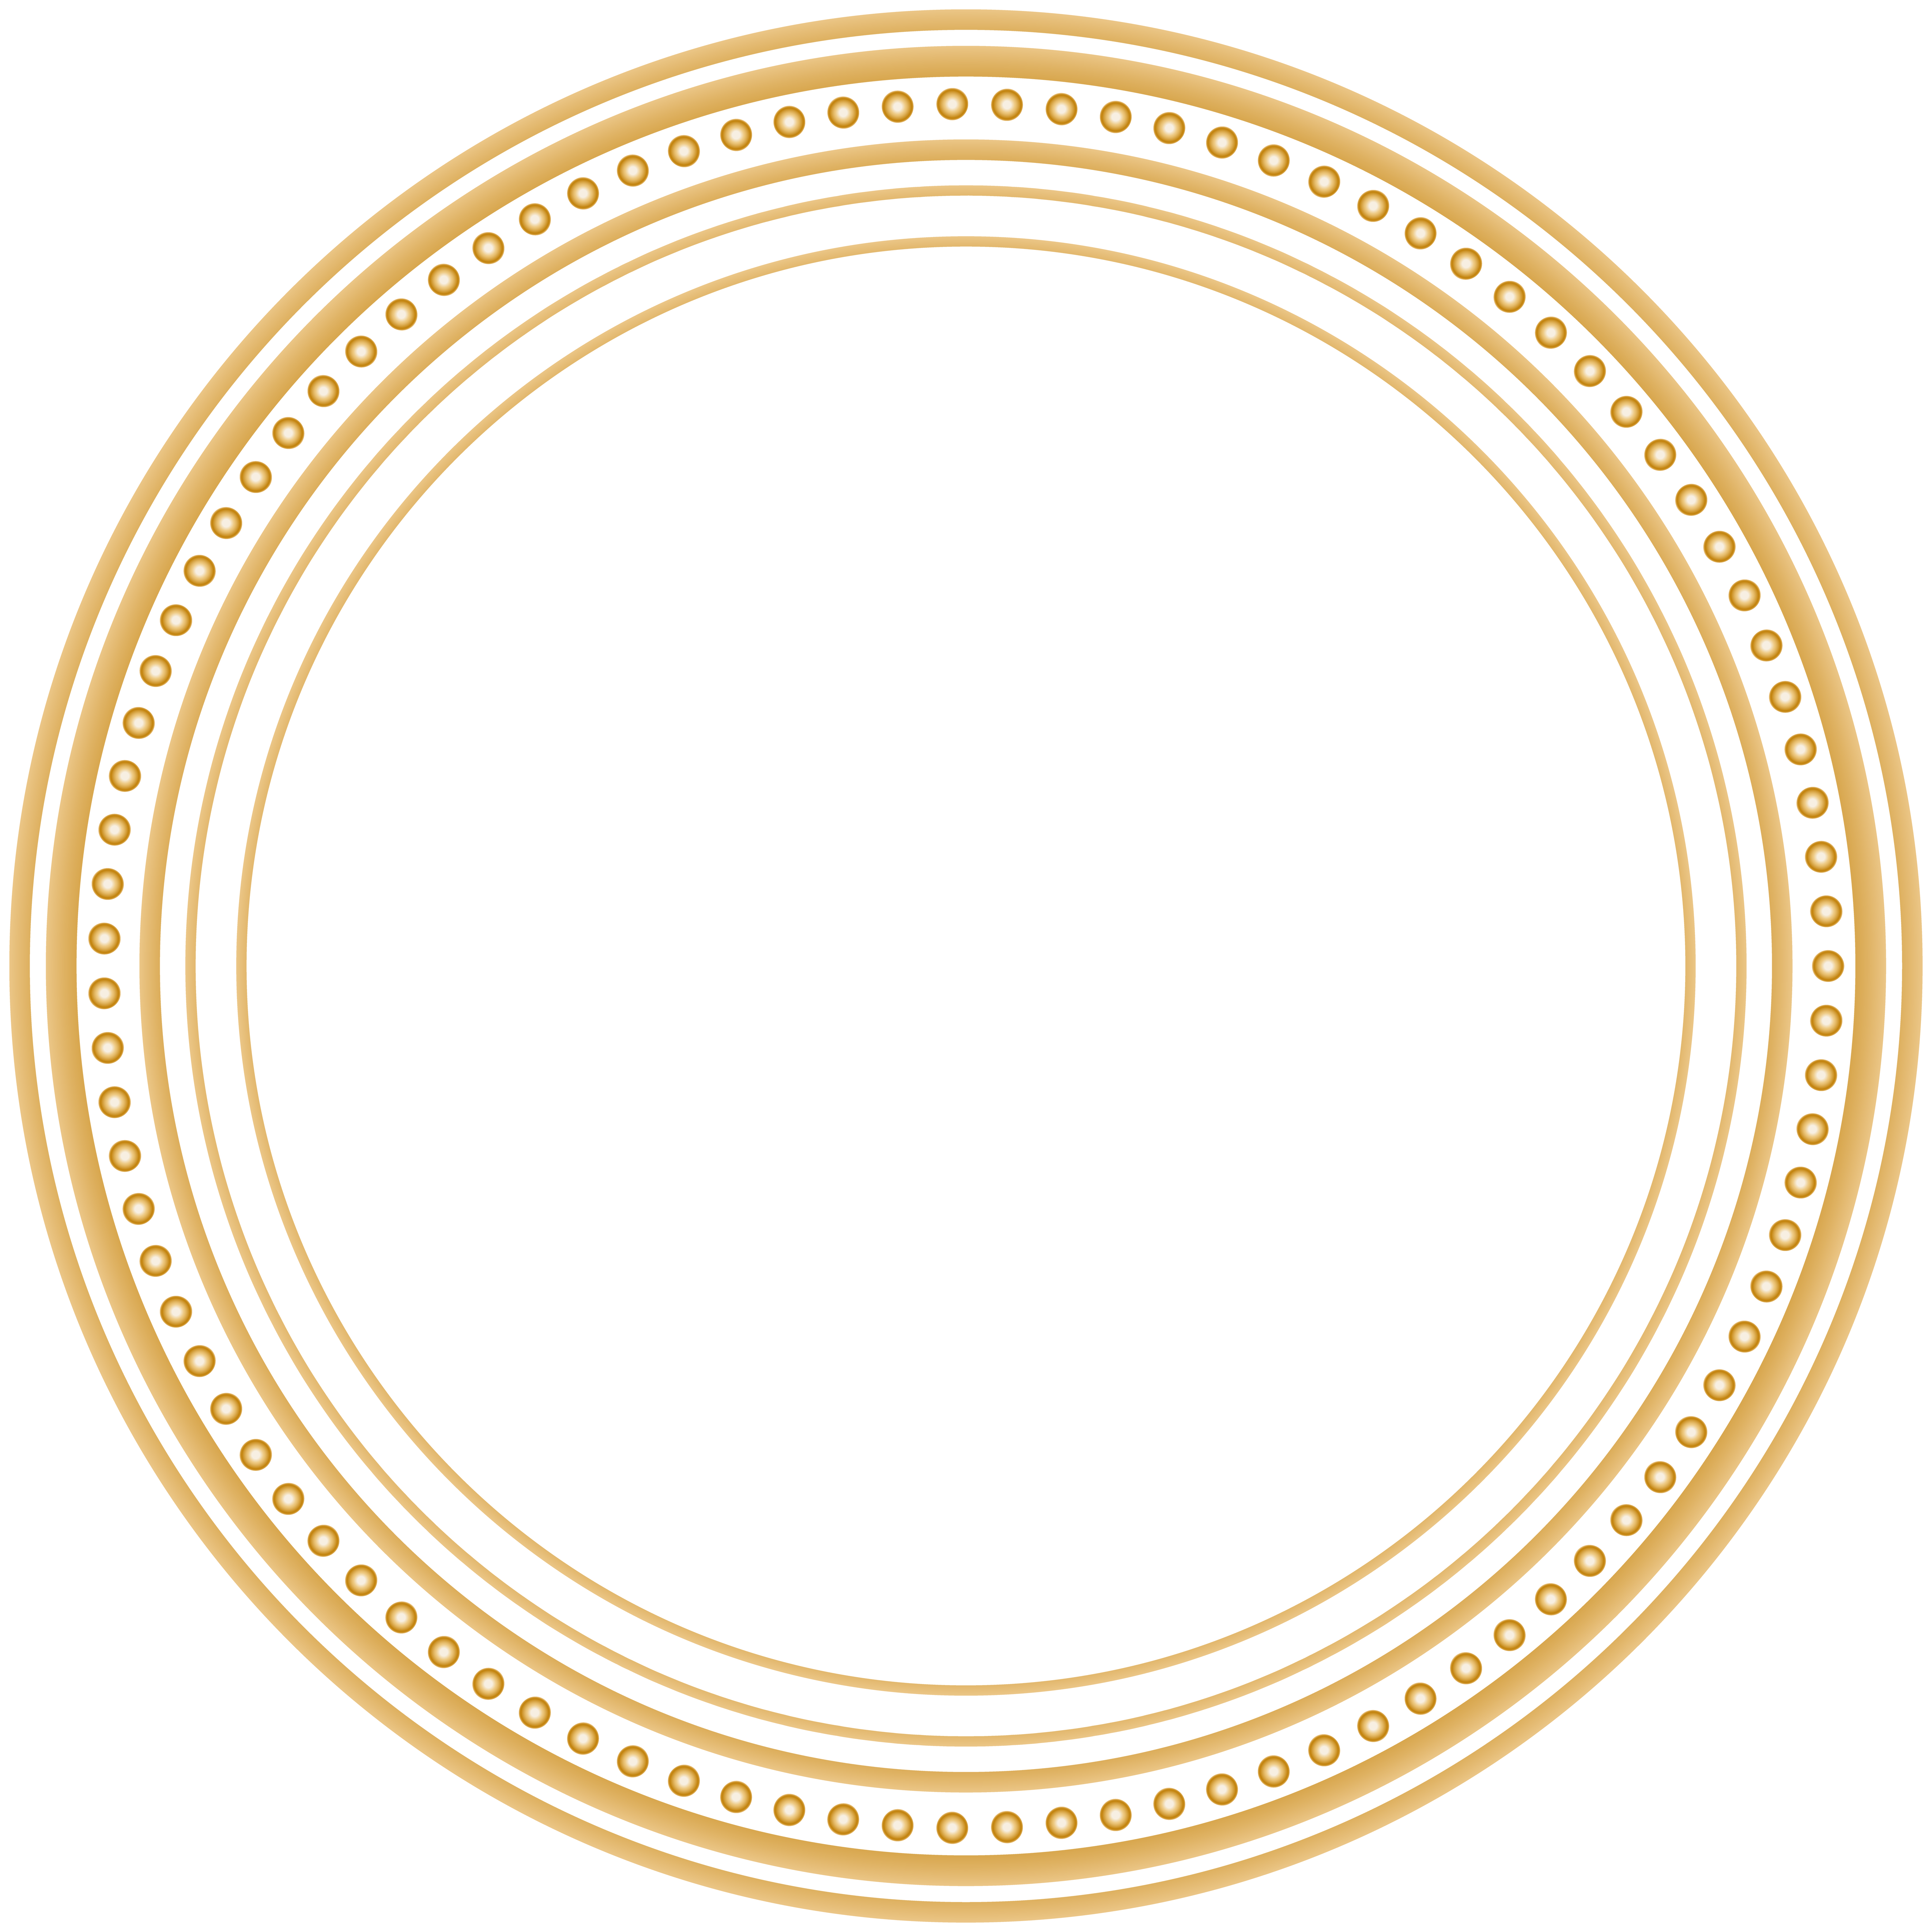 Round picture frame clipart jpg freeuse download Round Frame Clip Art PNG Image | Gallery Yopriceville ... jpg freeuse download